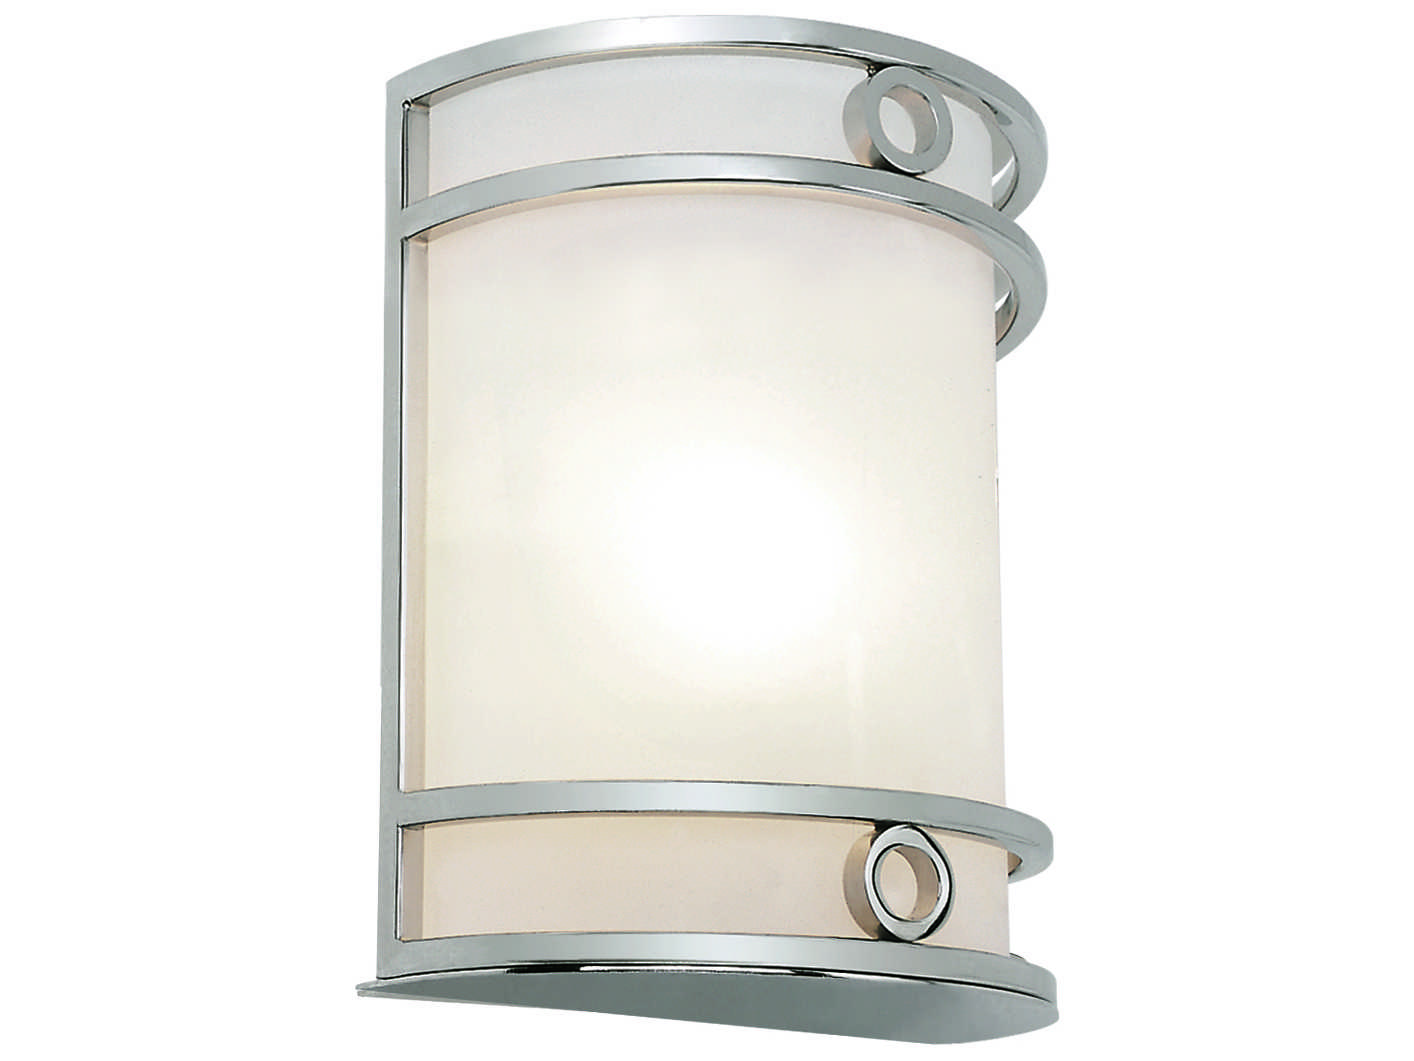 Progress Lighting Archie 3 Light 8 75 In Polished Chrome: Trans Globe Lighting Eclectic Boutique Polished Chrome